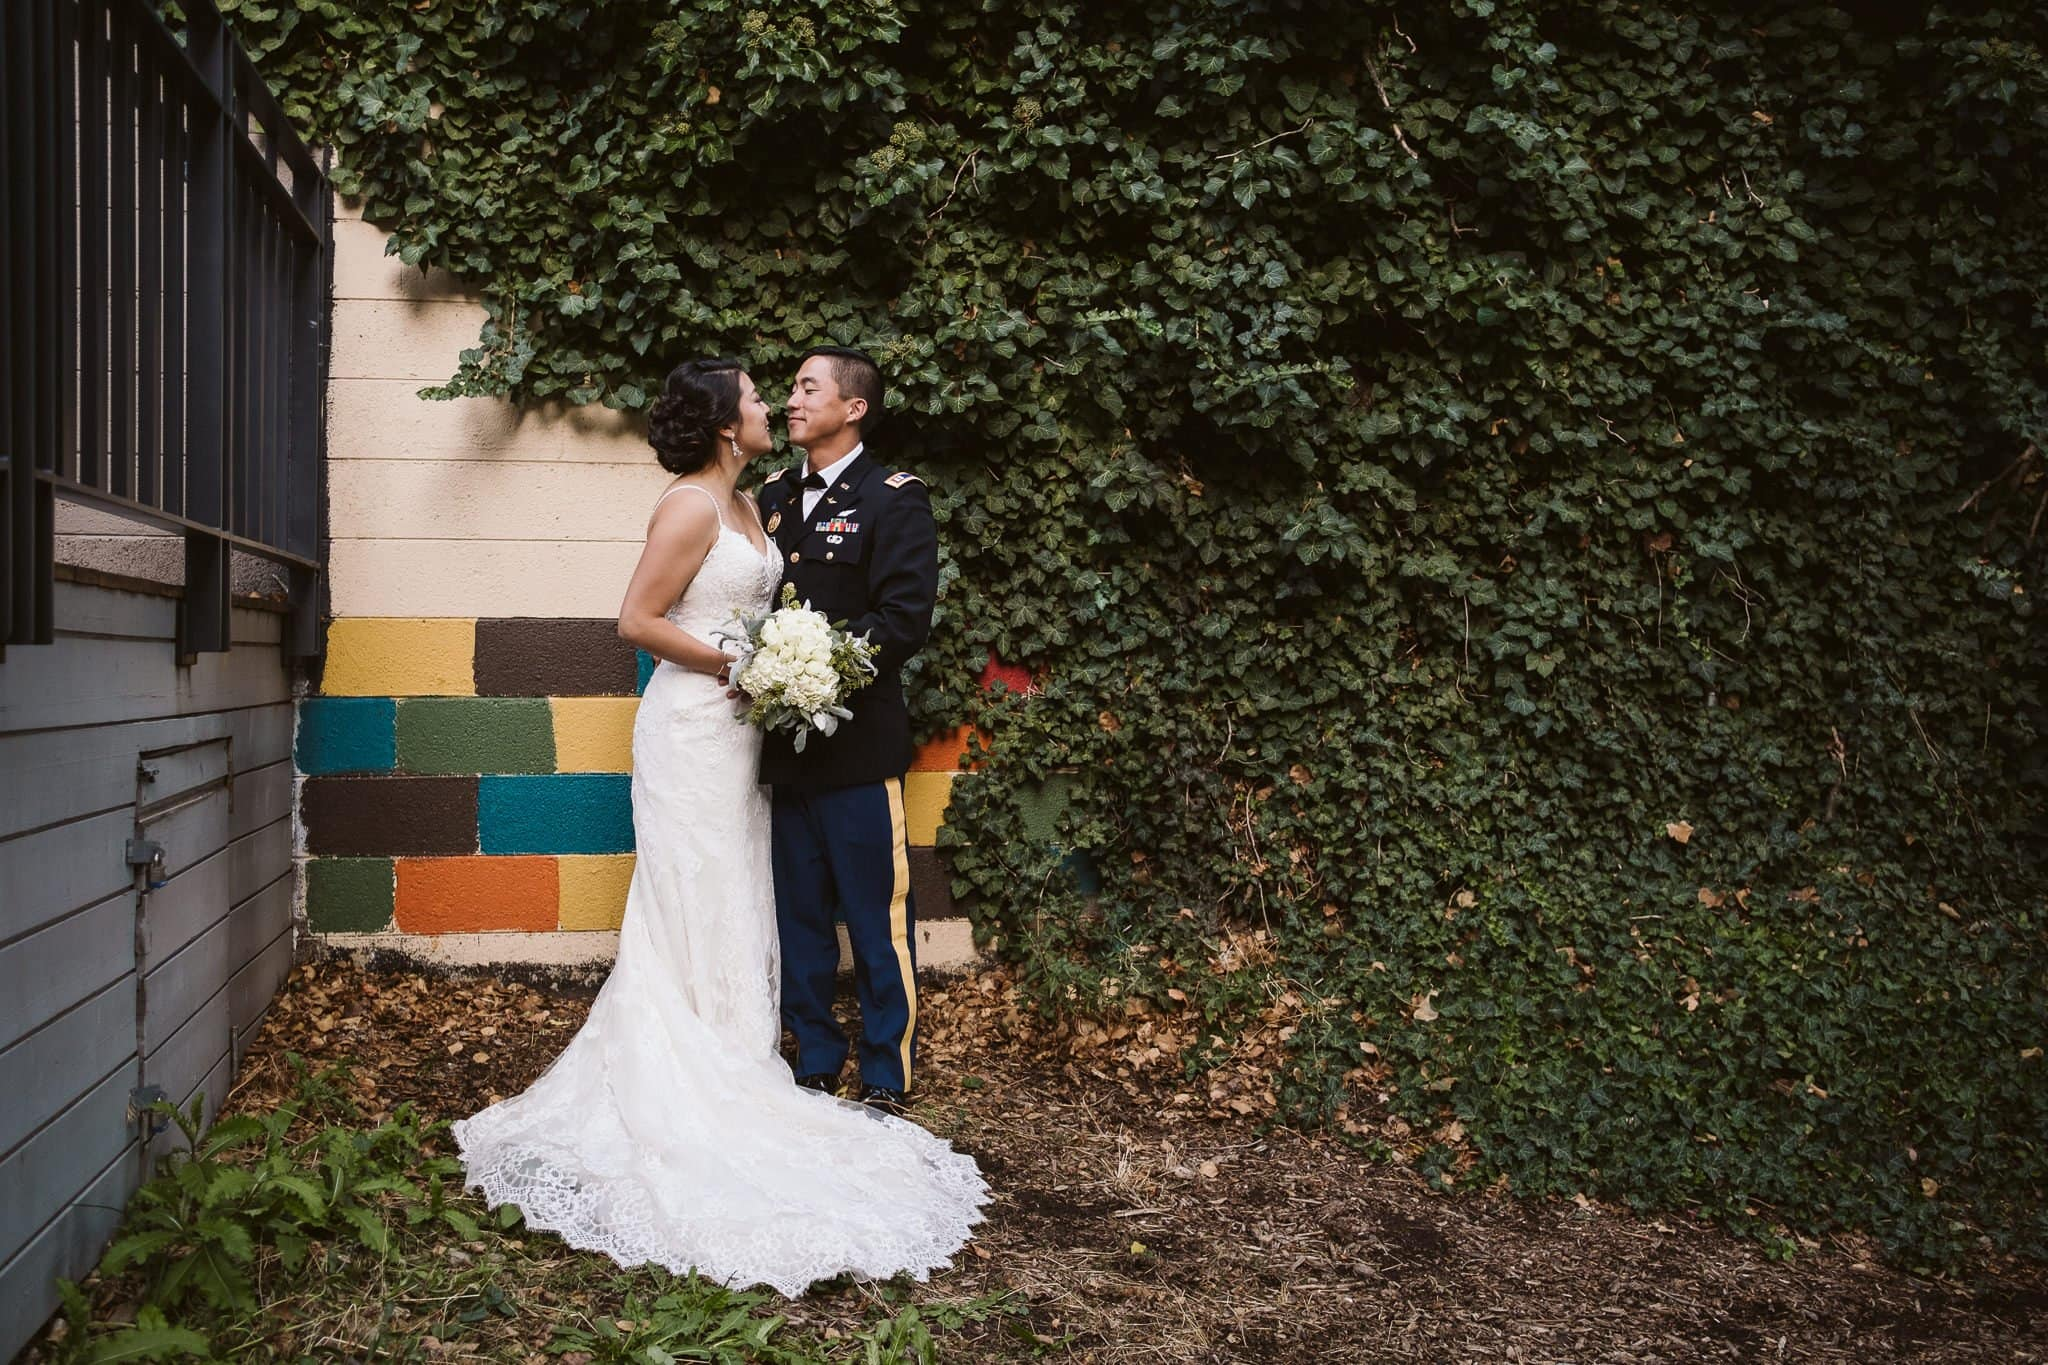 Ashley + Wayne's Rembrandt Yard Wedding